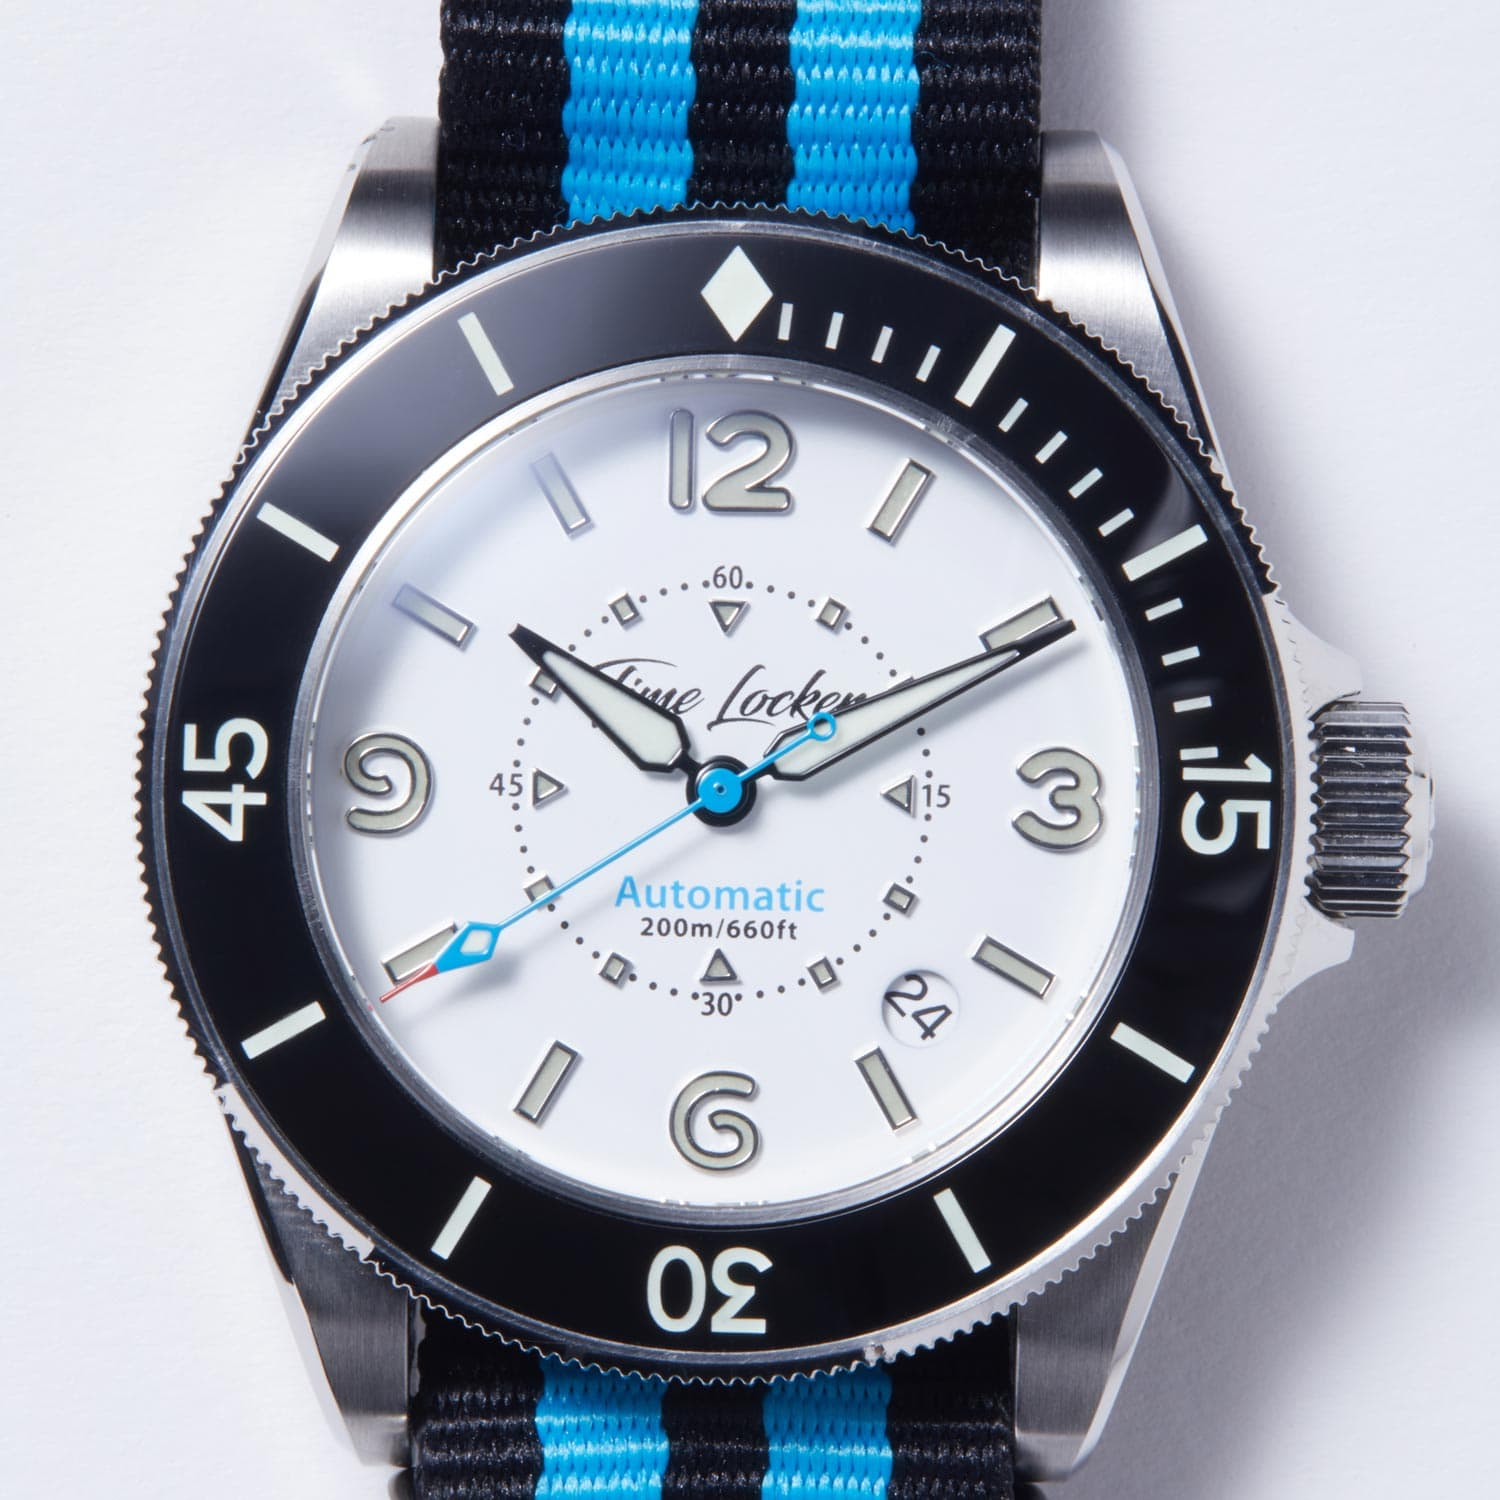 Time-Locker-Kouriles-White-Dial-Dive-Watch.jpg